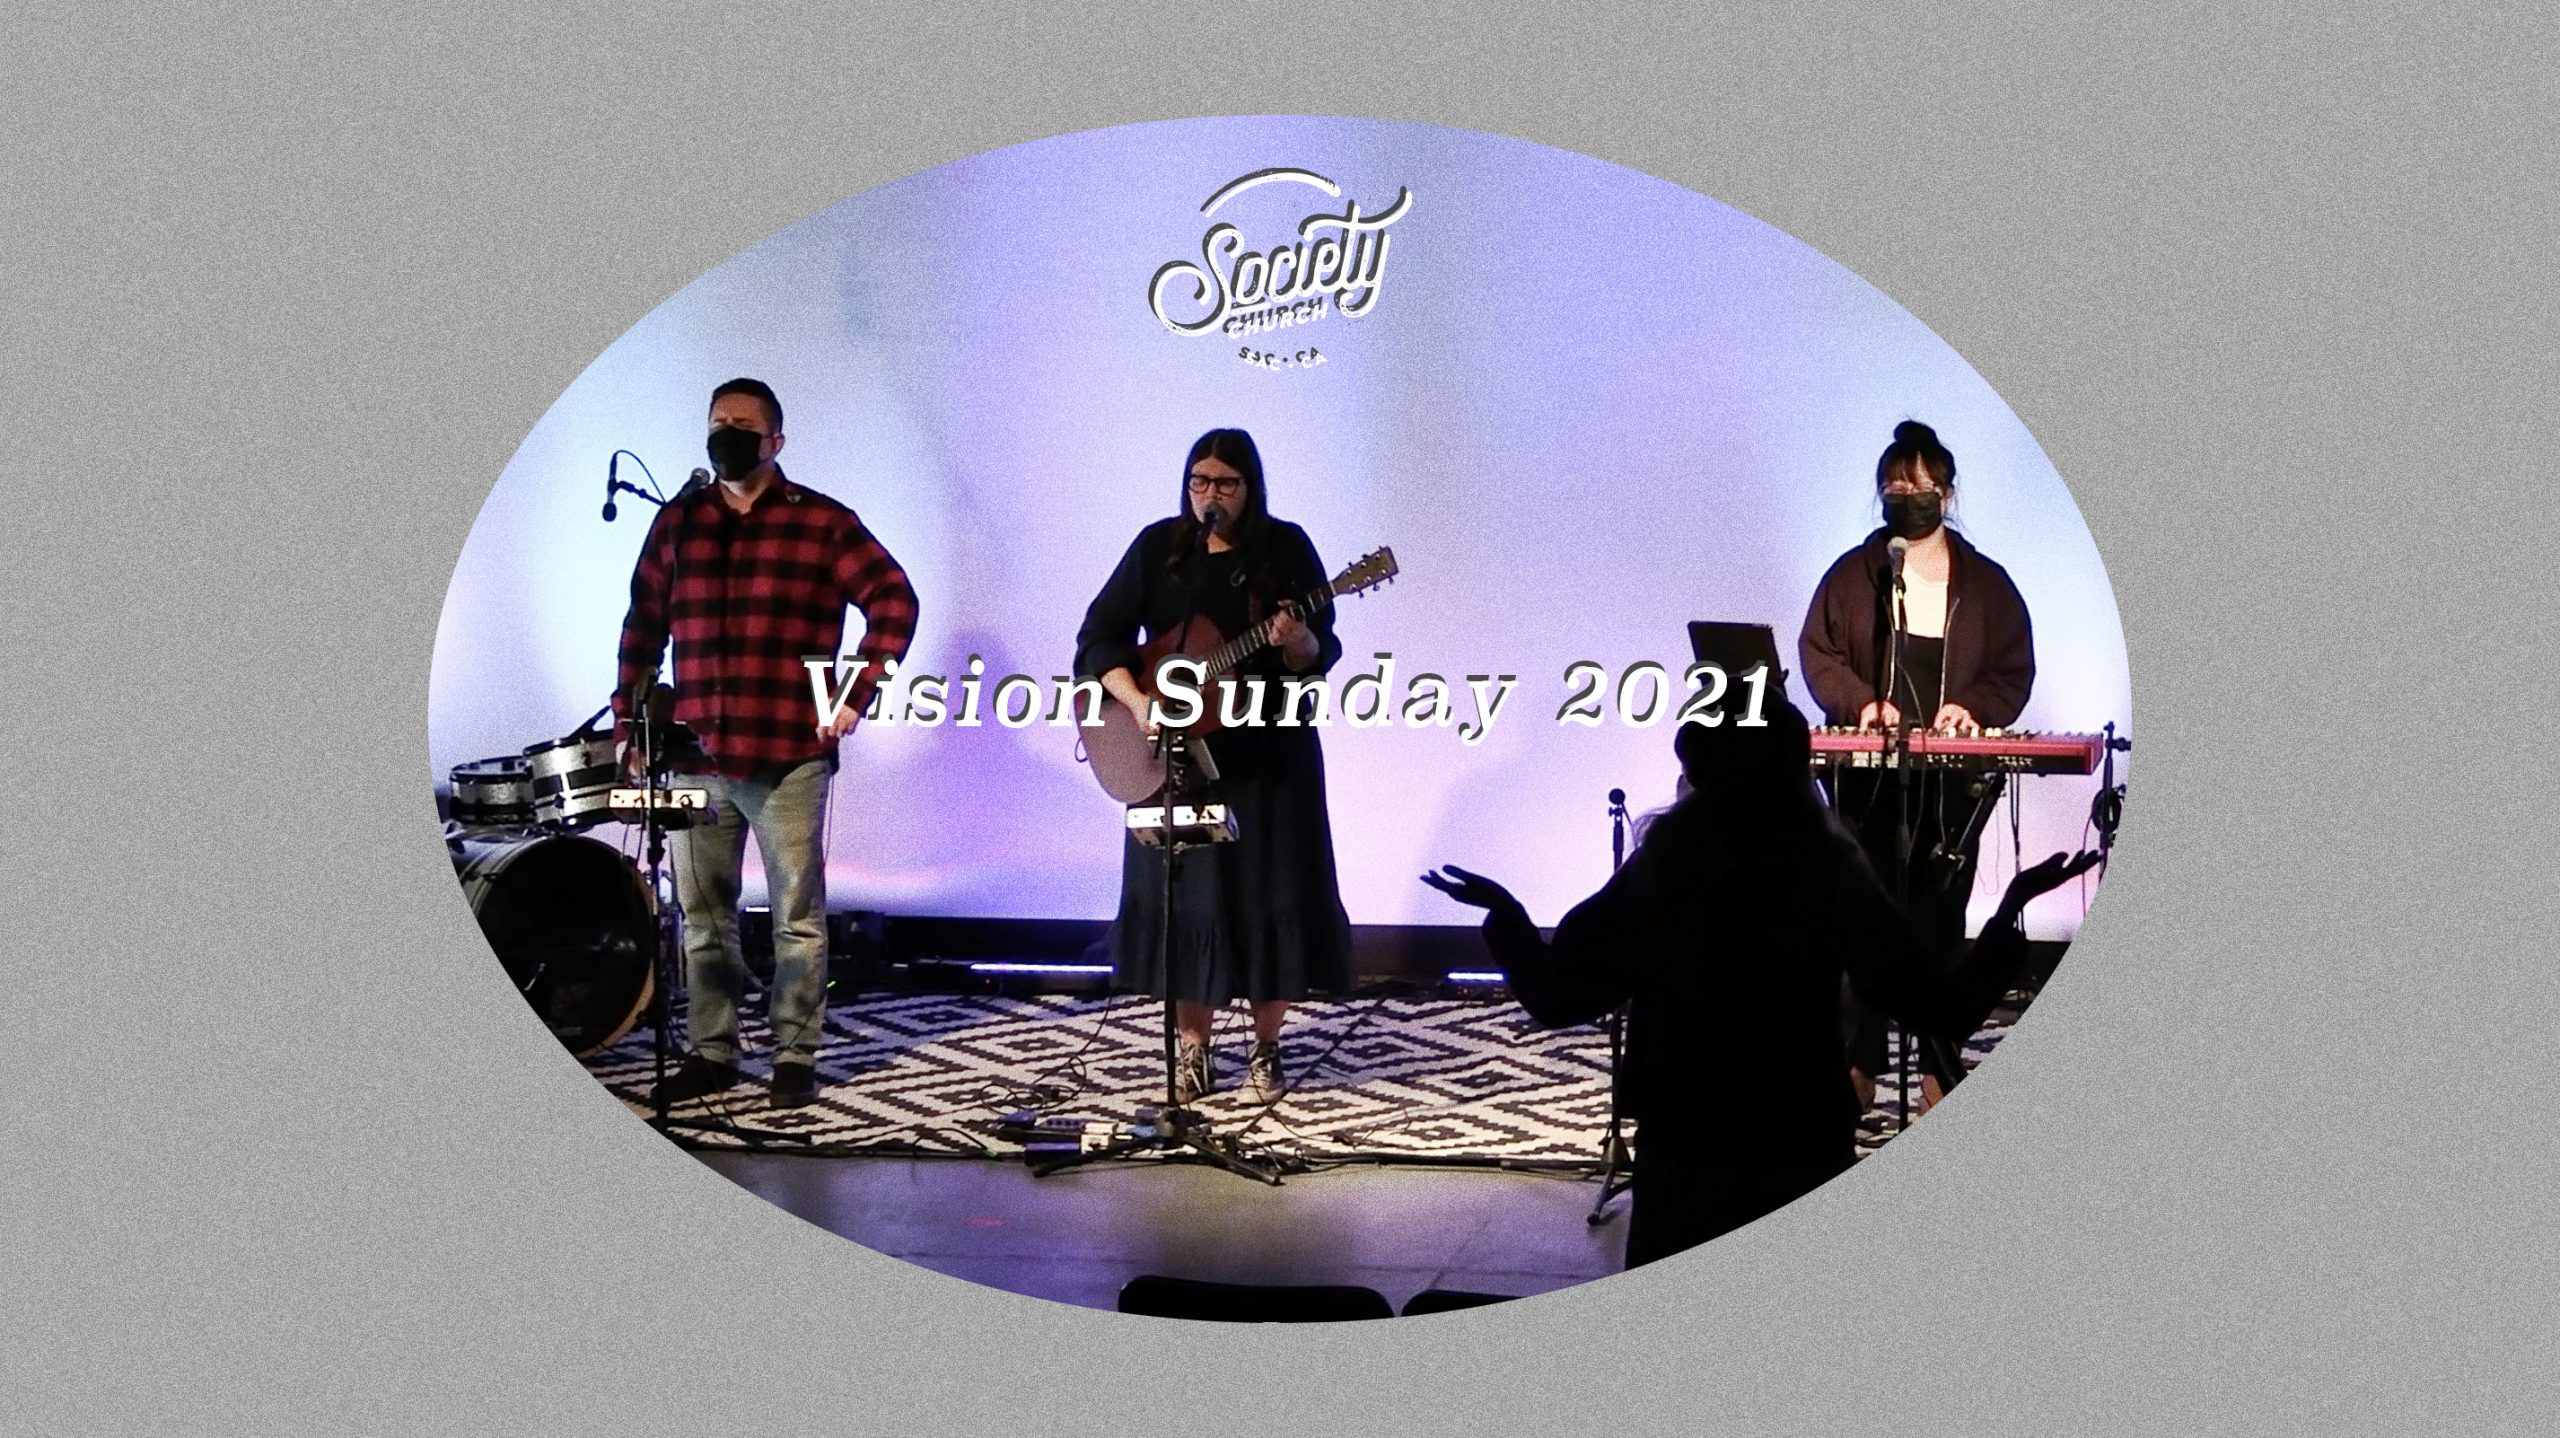 Vision Sunday 2021: A Season of Reunion